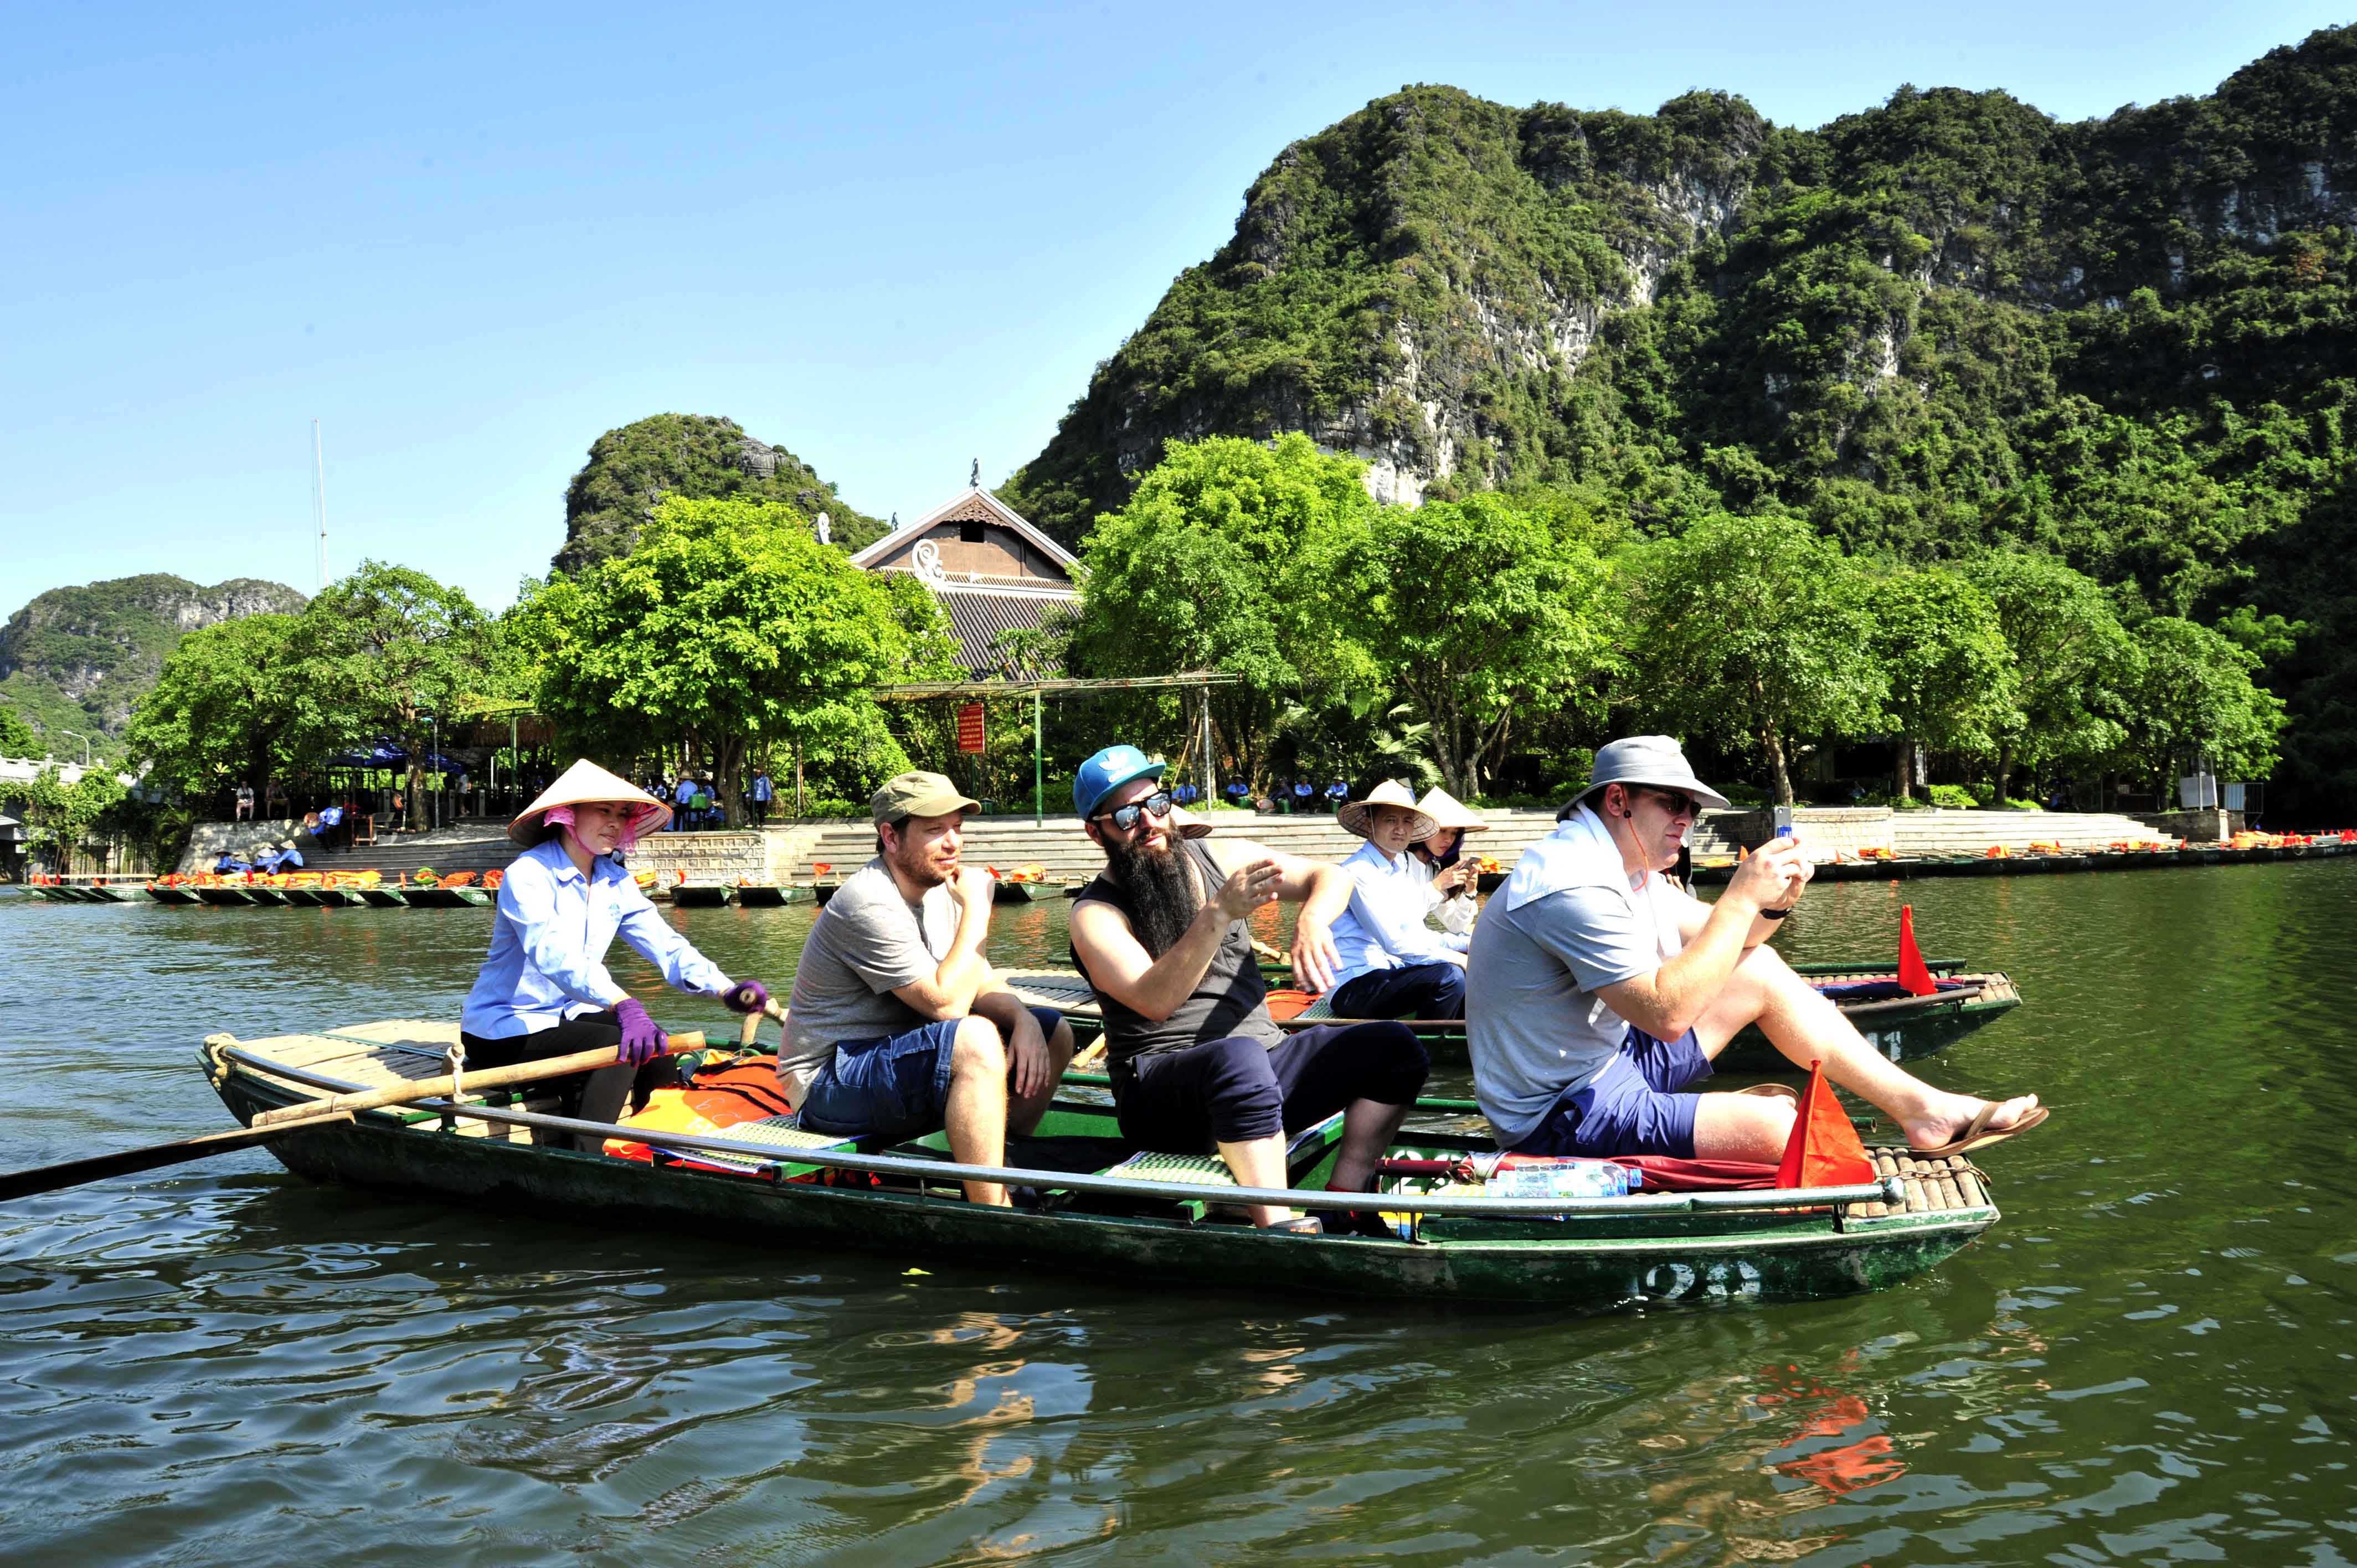 Foreigners to Vietnam hit over 9.7 million